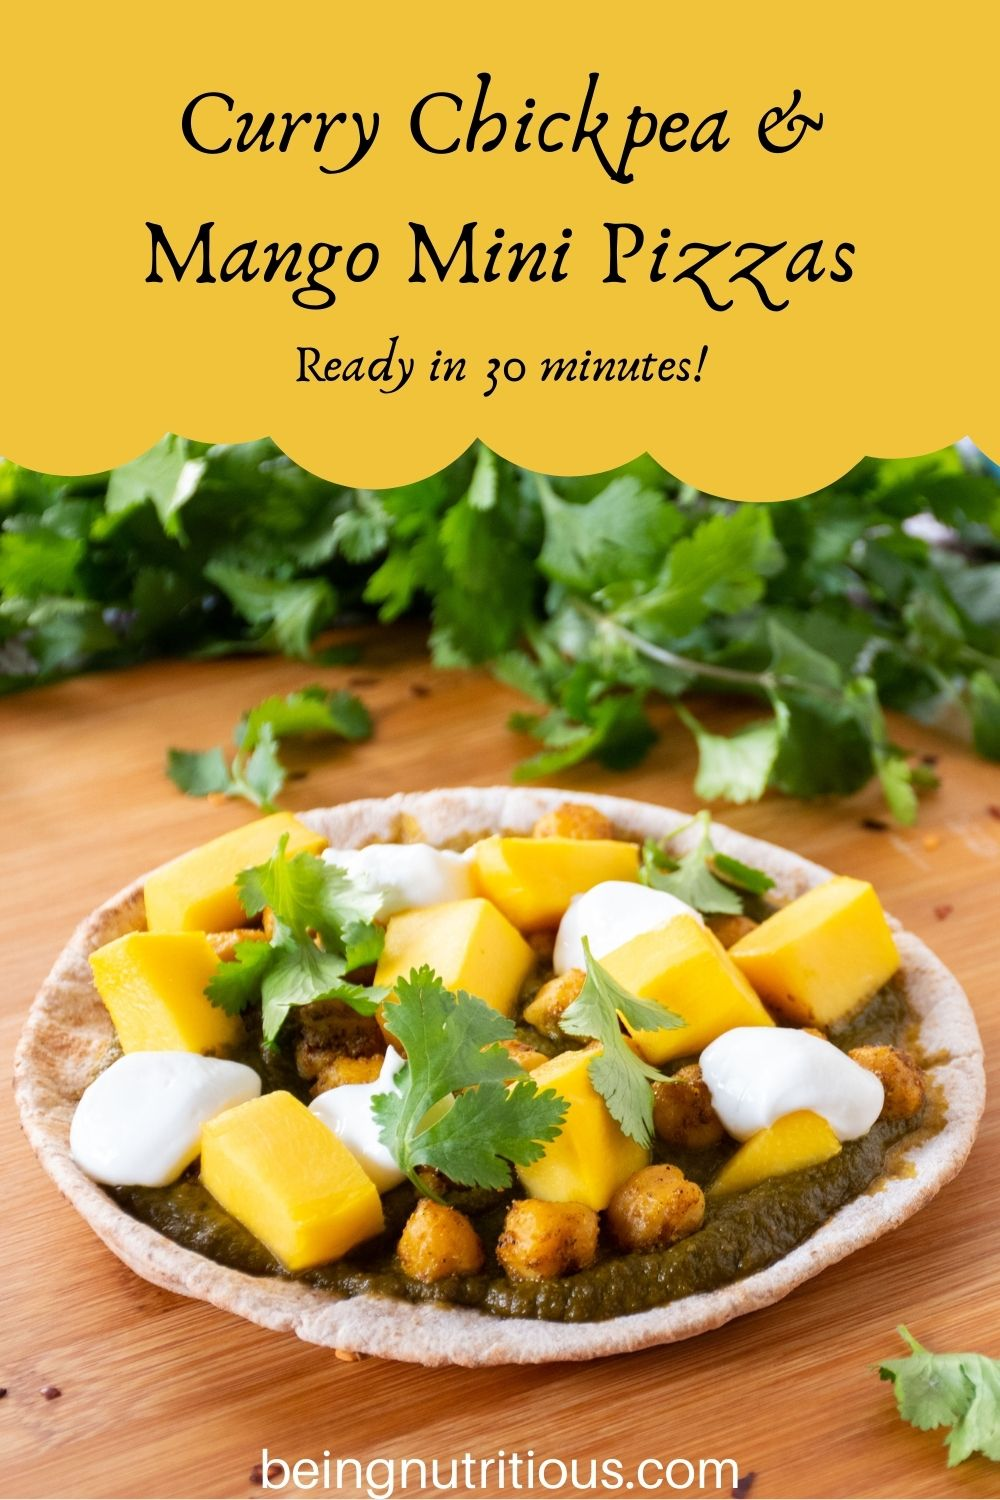 pizza with spinach sauce, chickpeas, and mangoes on a mini pita. Text overlay: Curry Chickpea & mango mini pizzas; ready in 30 minutes!